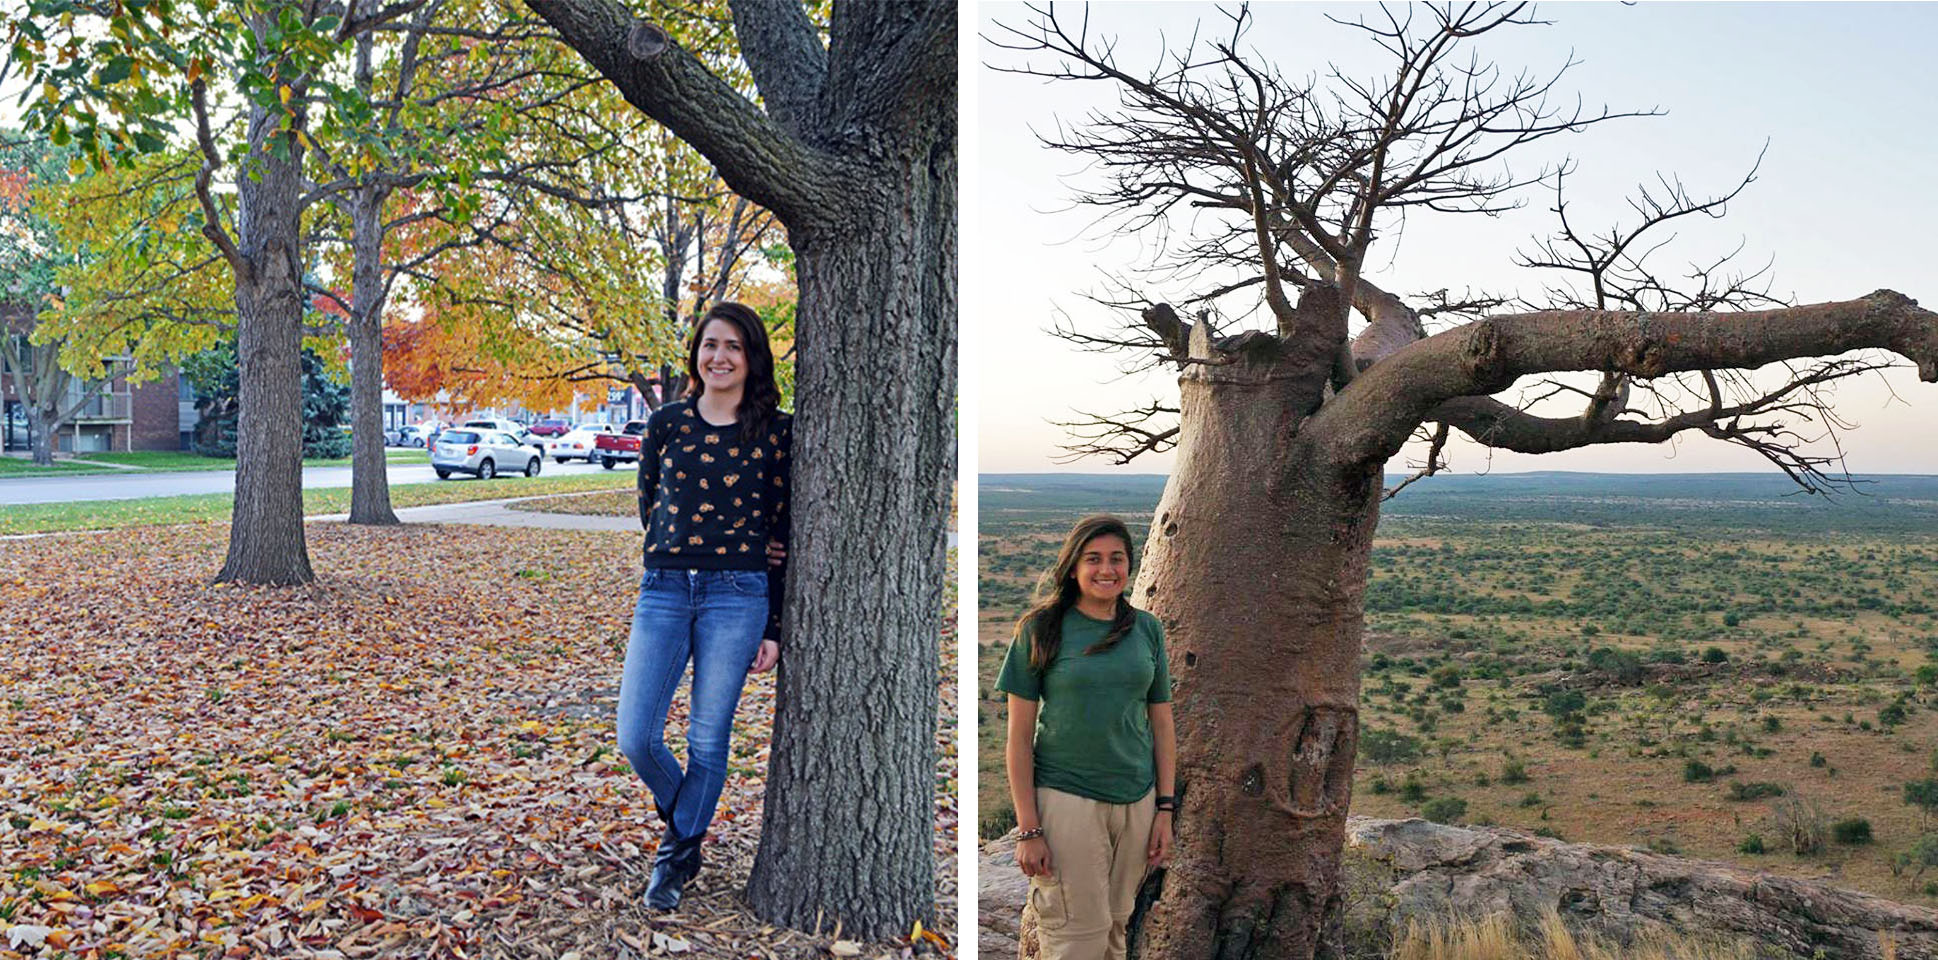 Jenna Schweiss, left, and Jazmin Castillo, both SNR students, will present during the first RED Talk on Thursday, Nov. 10 at Love Library North.